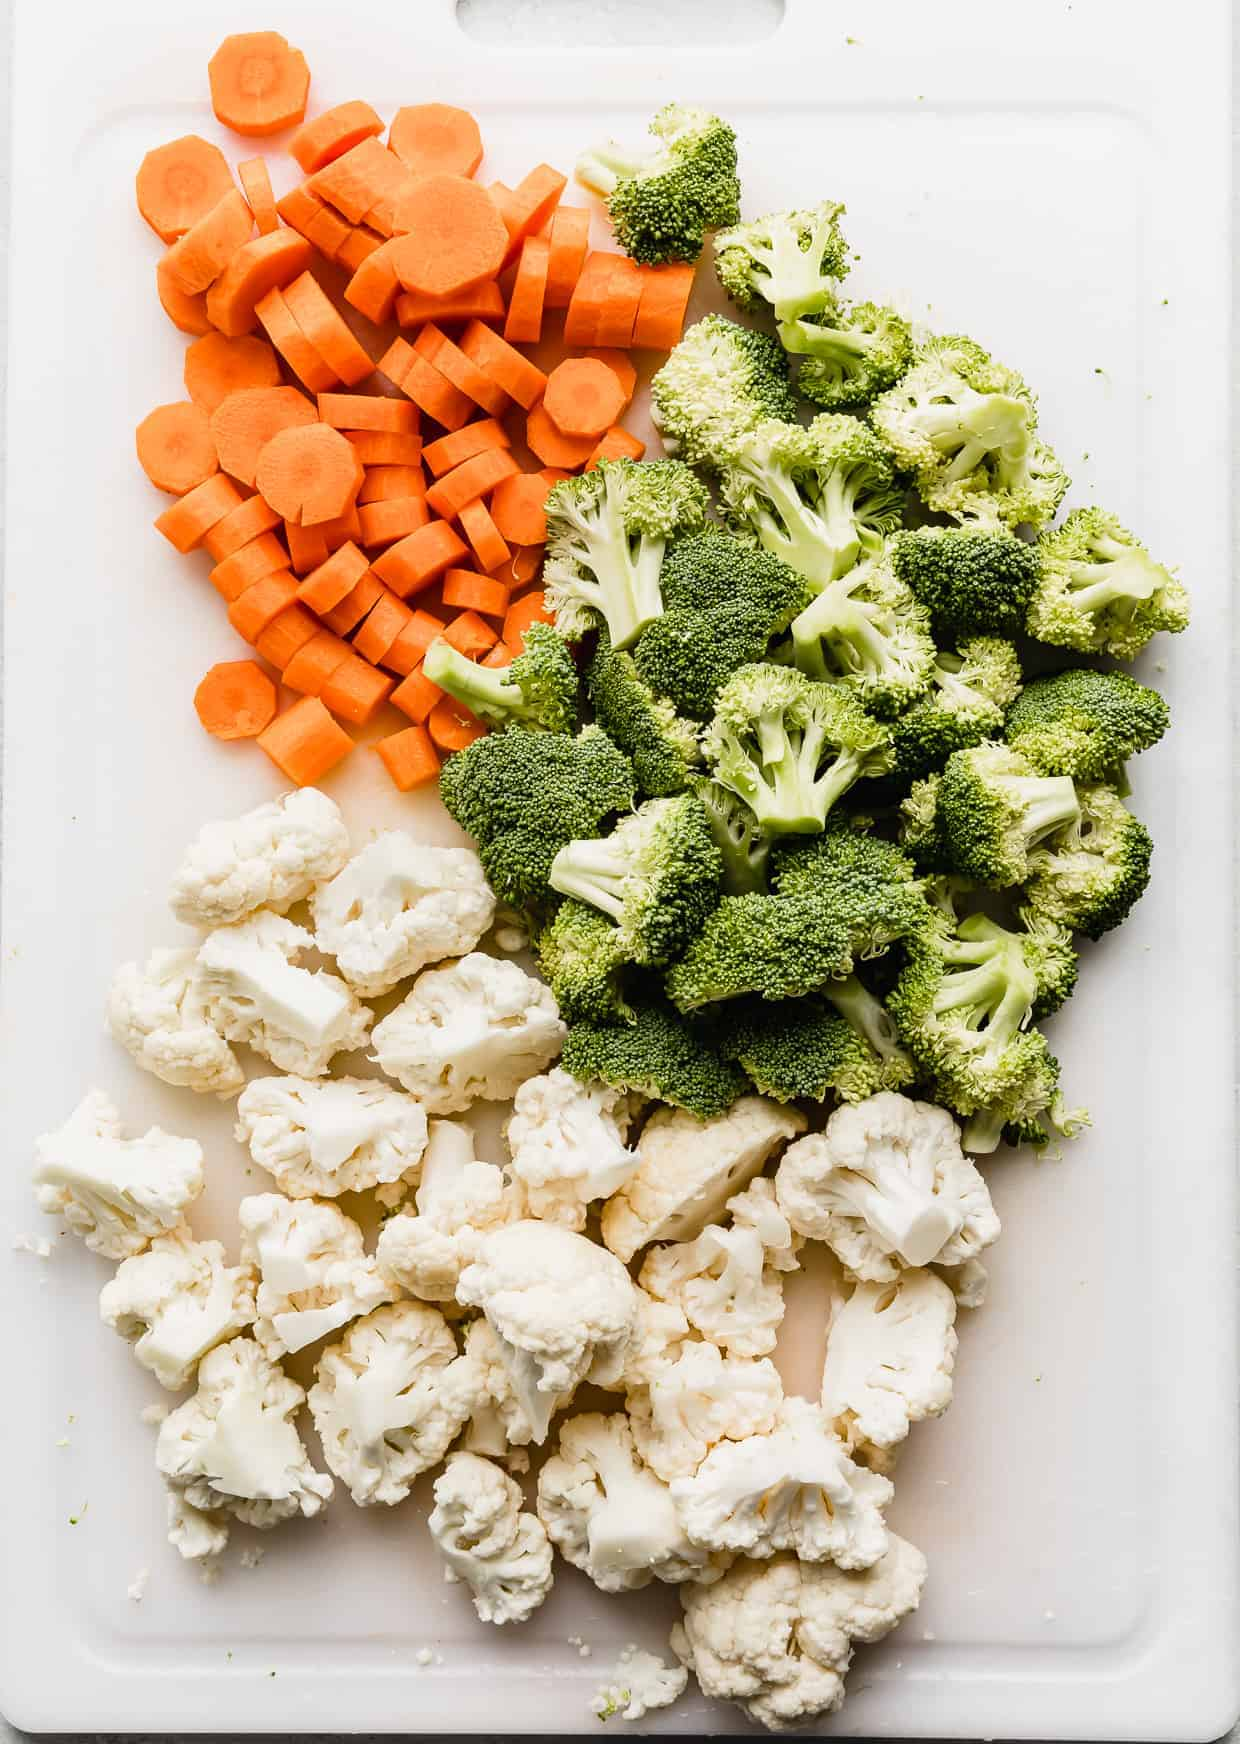 Chopped cauliflower, broccoli, and carrots on a white cutting board.